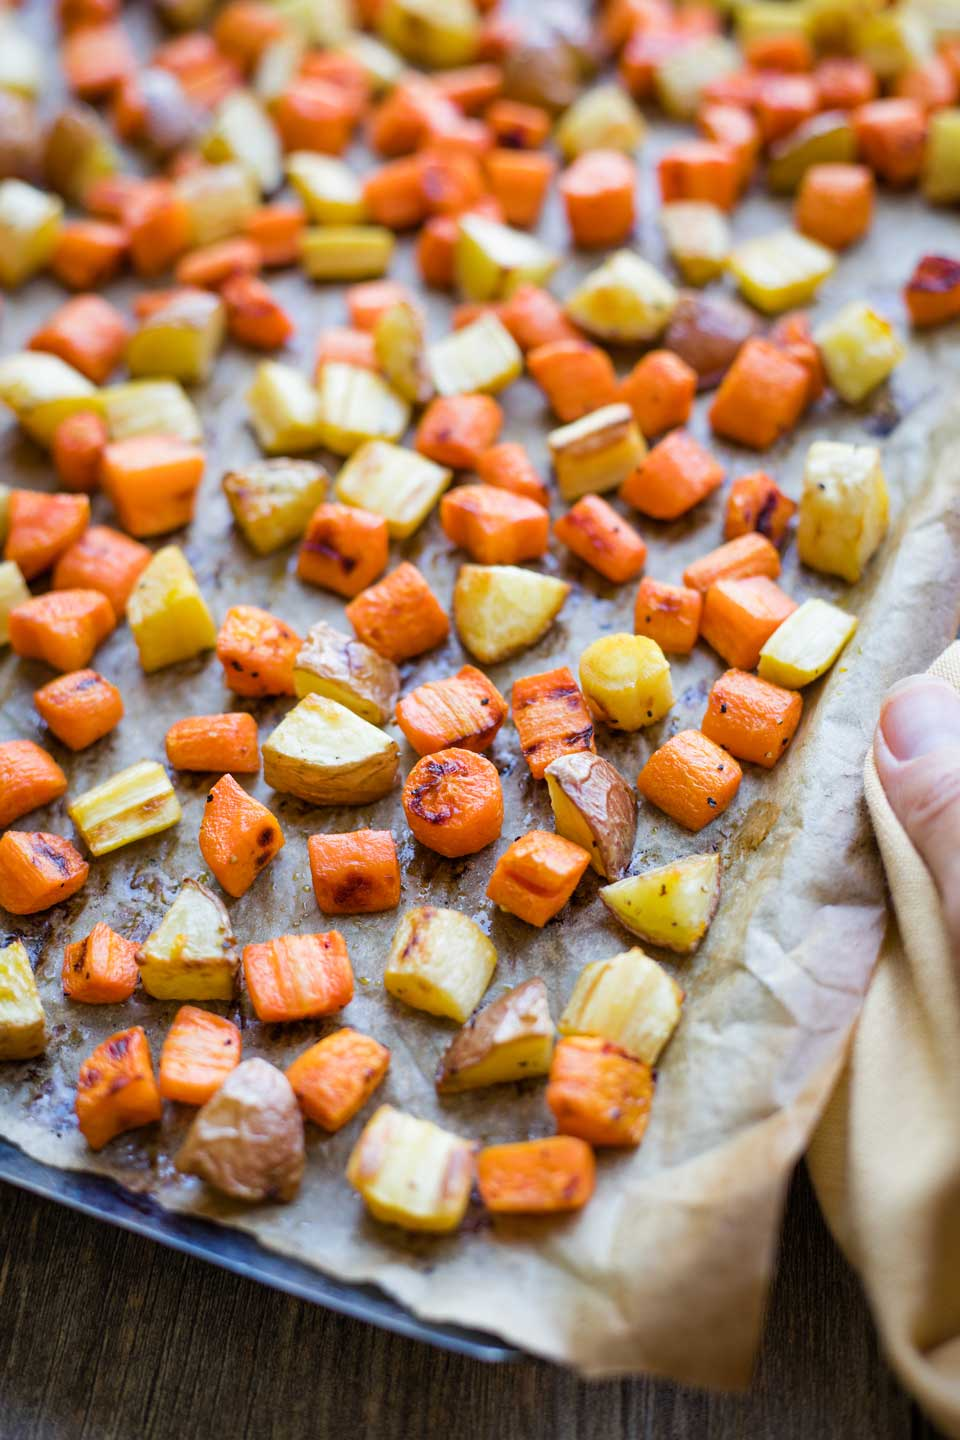 Roasted Root Vegetables fresh from the oven, still on baking sheet